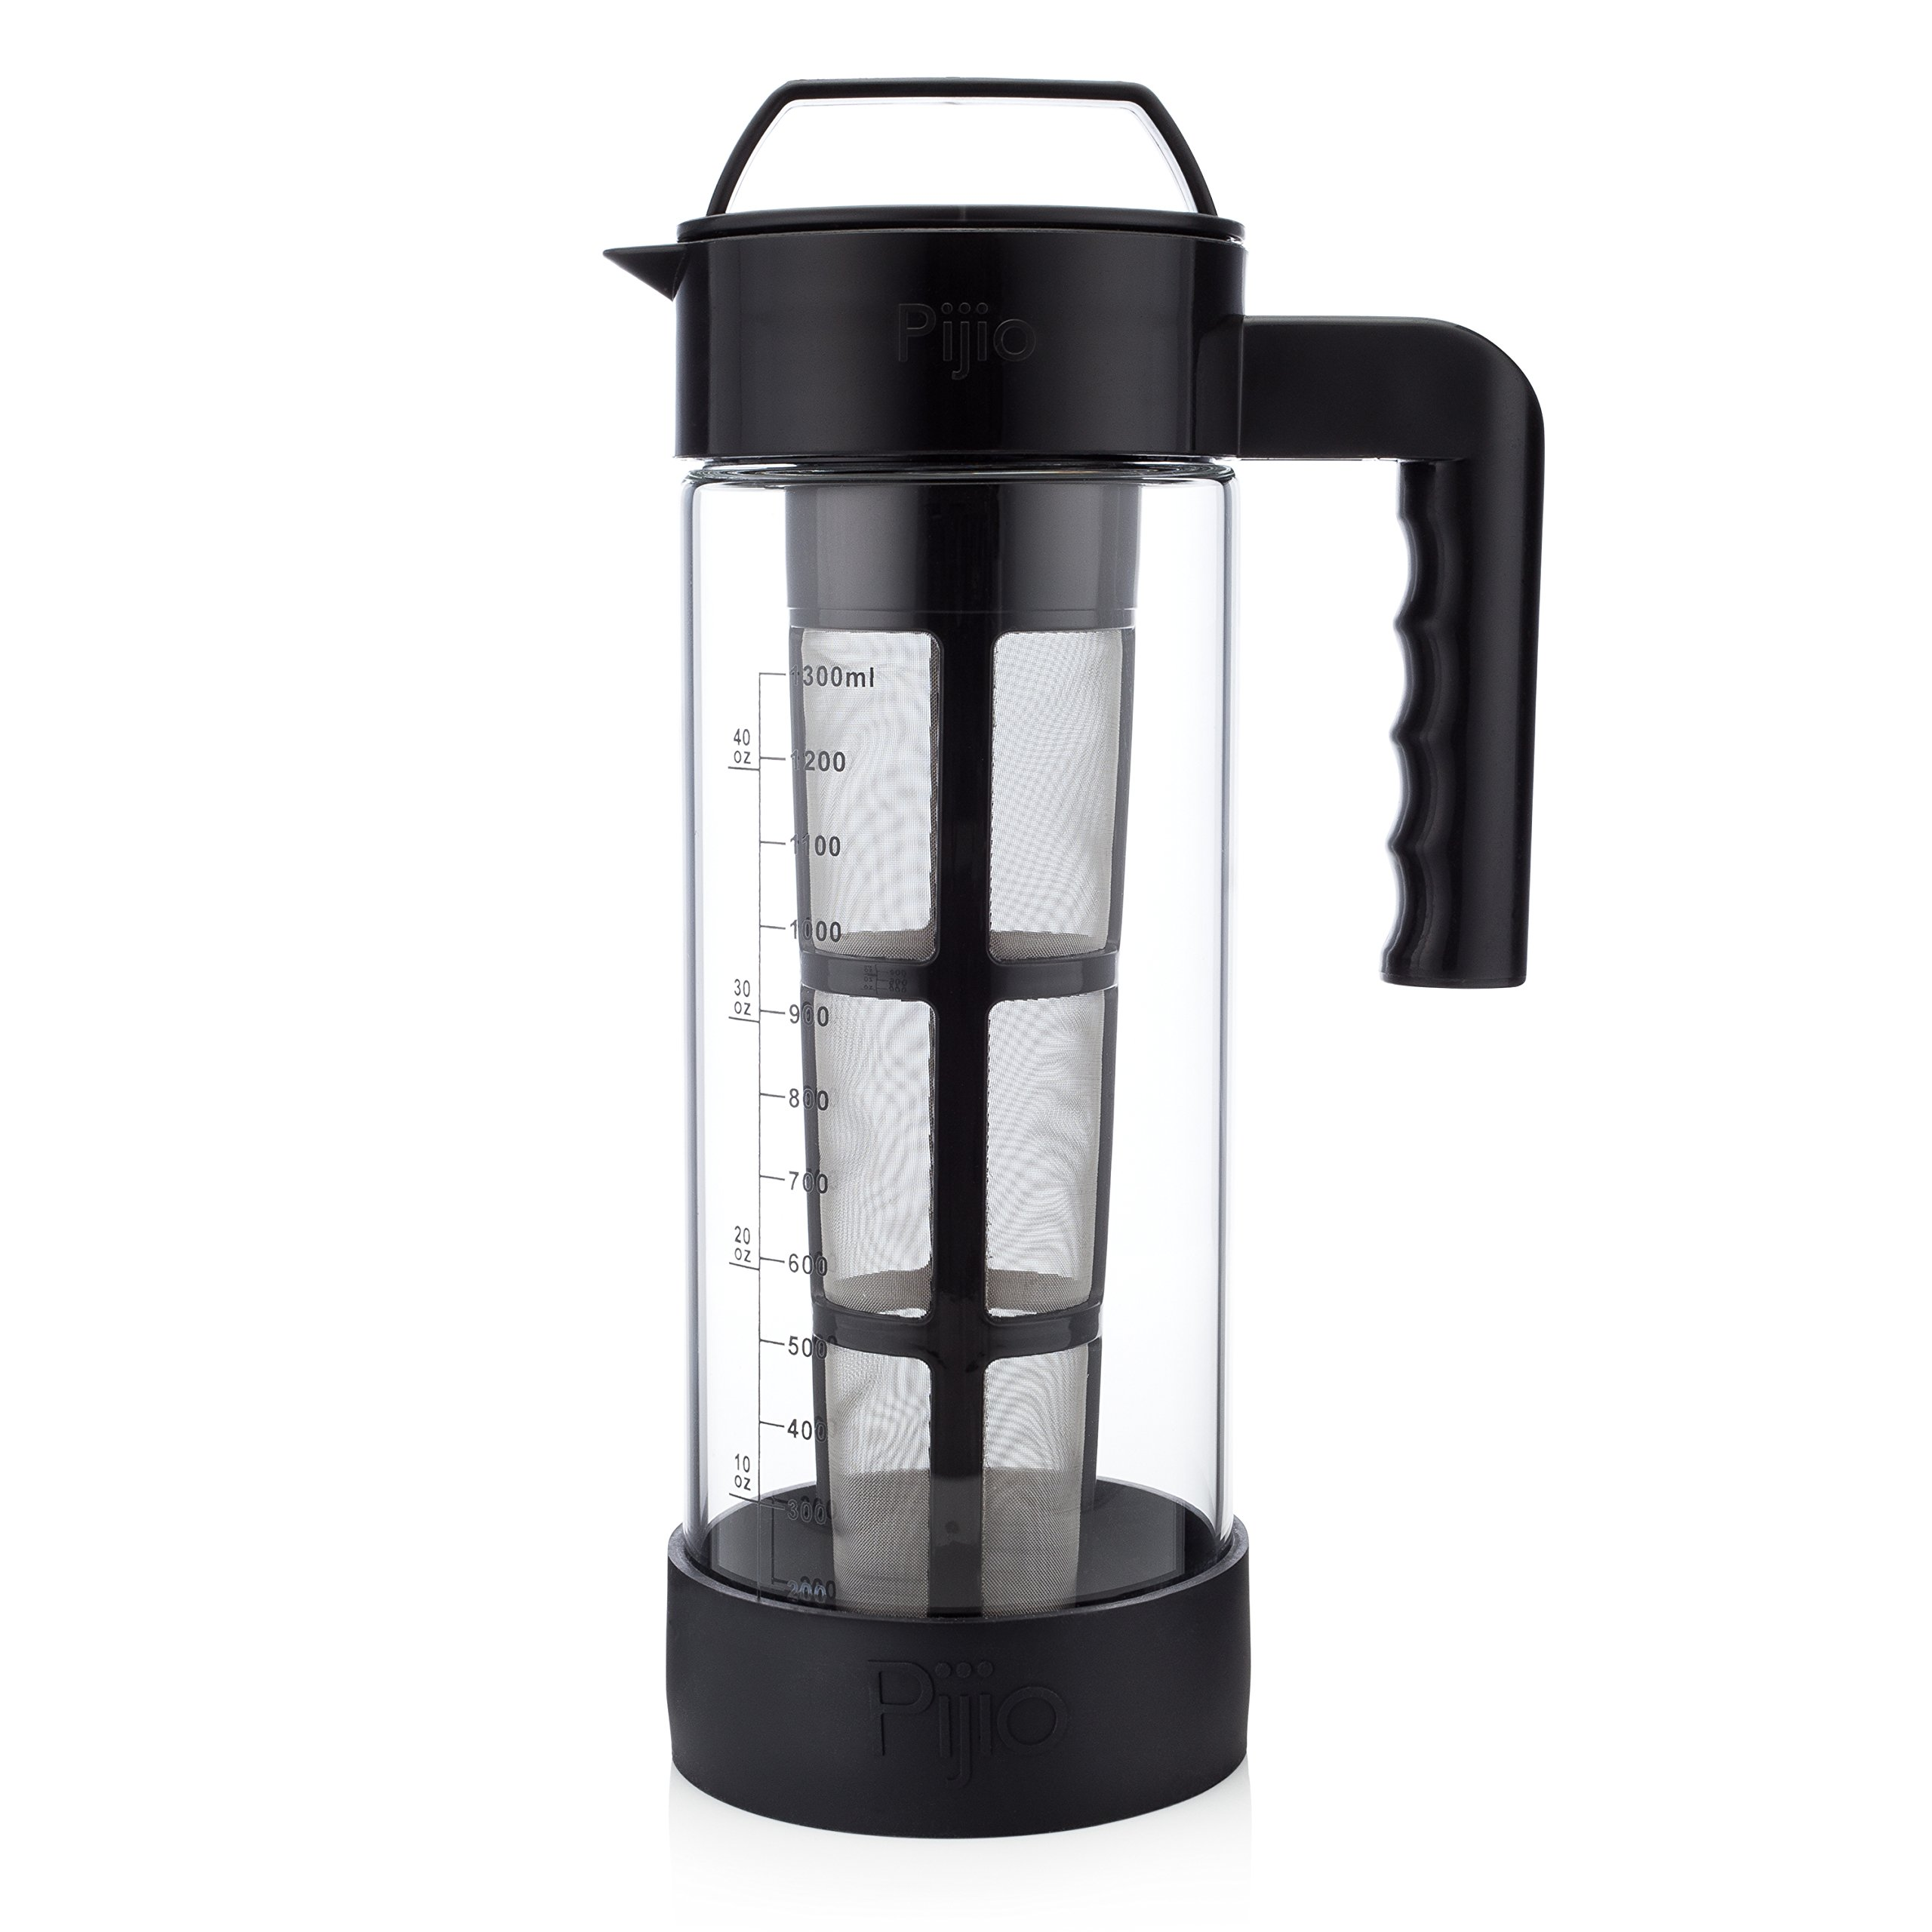 XL Best Glass Cold Brew Coffee Maker & Iced Tea Pitcher Kit, Makes 1.3 Liters of Concentrate - Airtight Seal - System includes Jar / Carafe / Pot, Reusable Large Stainless Steel Micro Filter & Bumper by Pijio